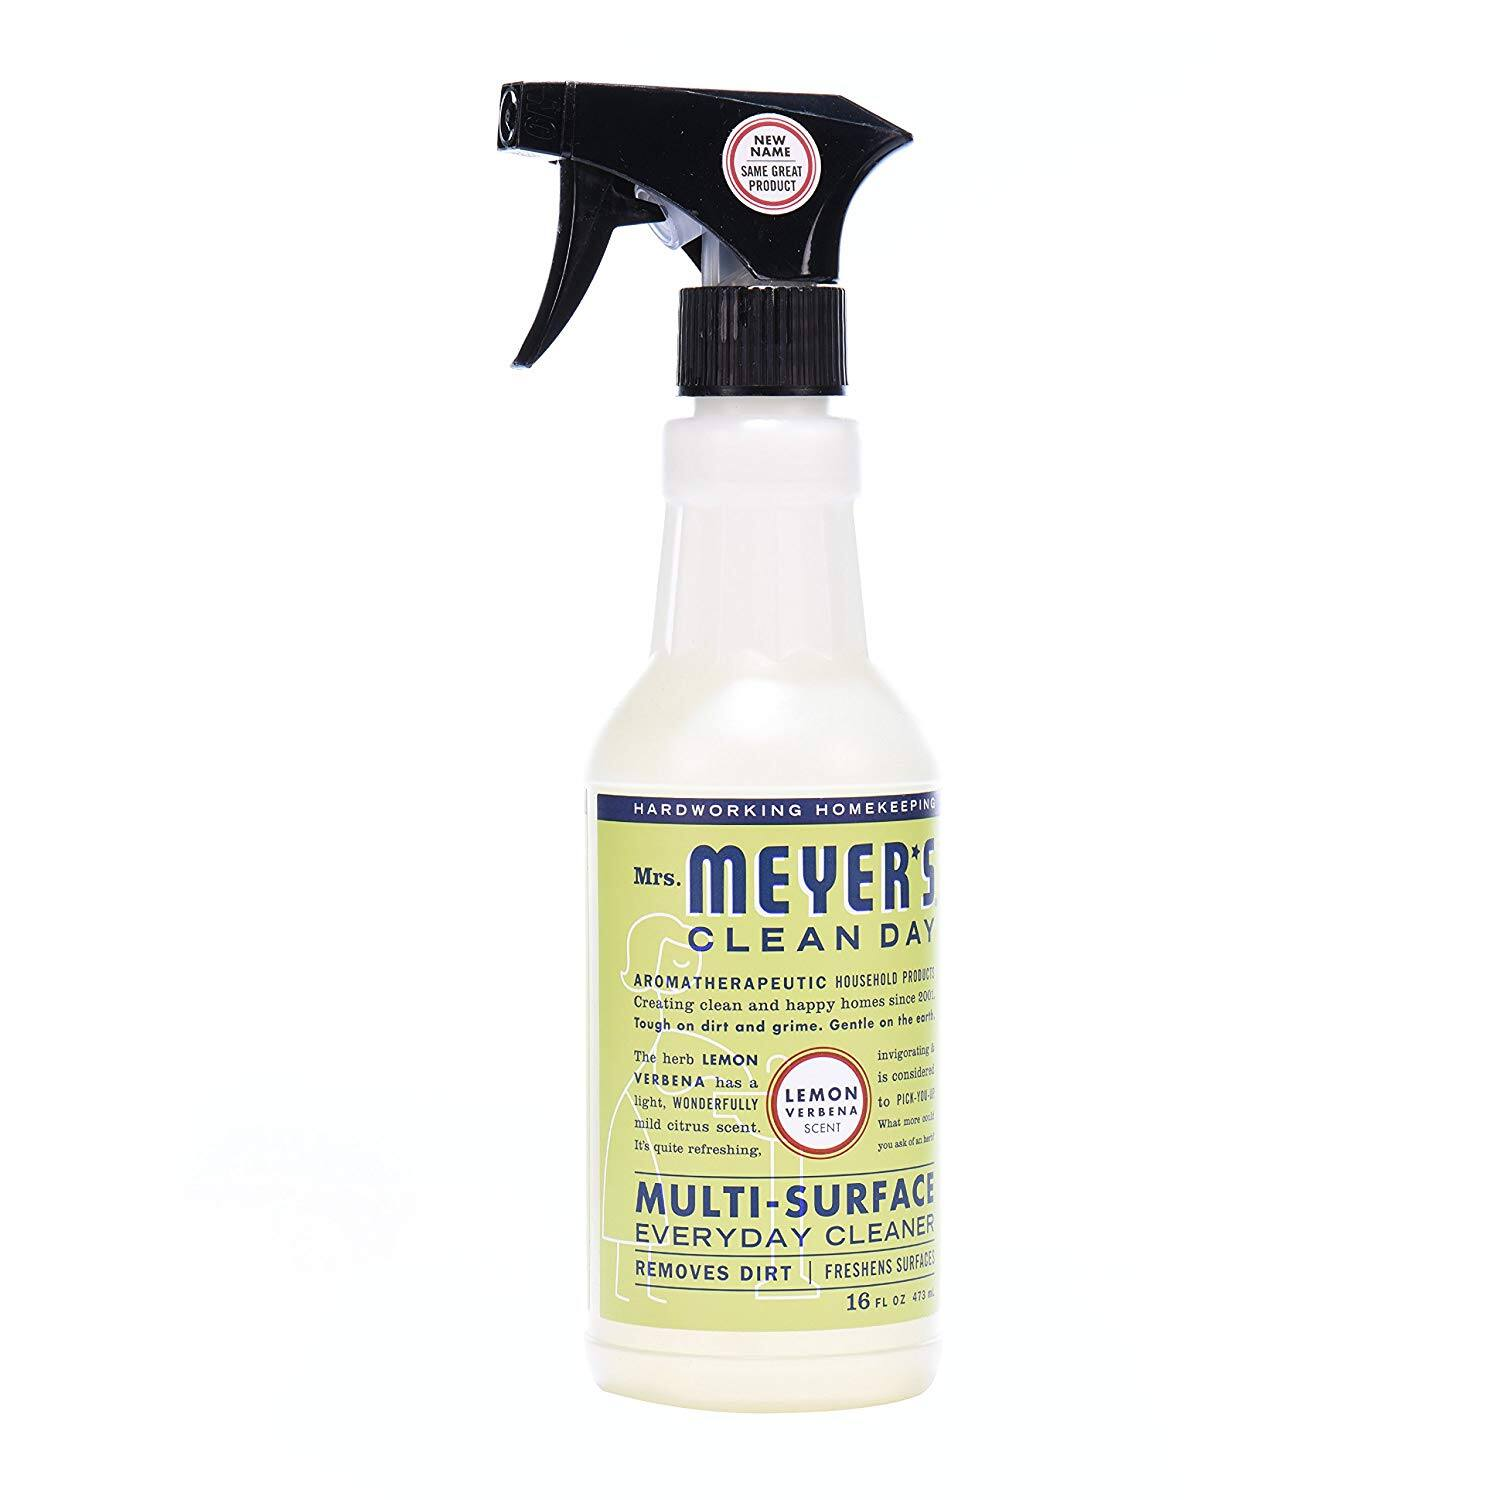 16oz Mrs. Meyer's Clean Day Multi-Surface Everyday Cleaner (Lemon Verbena) $2.22 + Free S/H